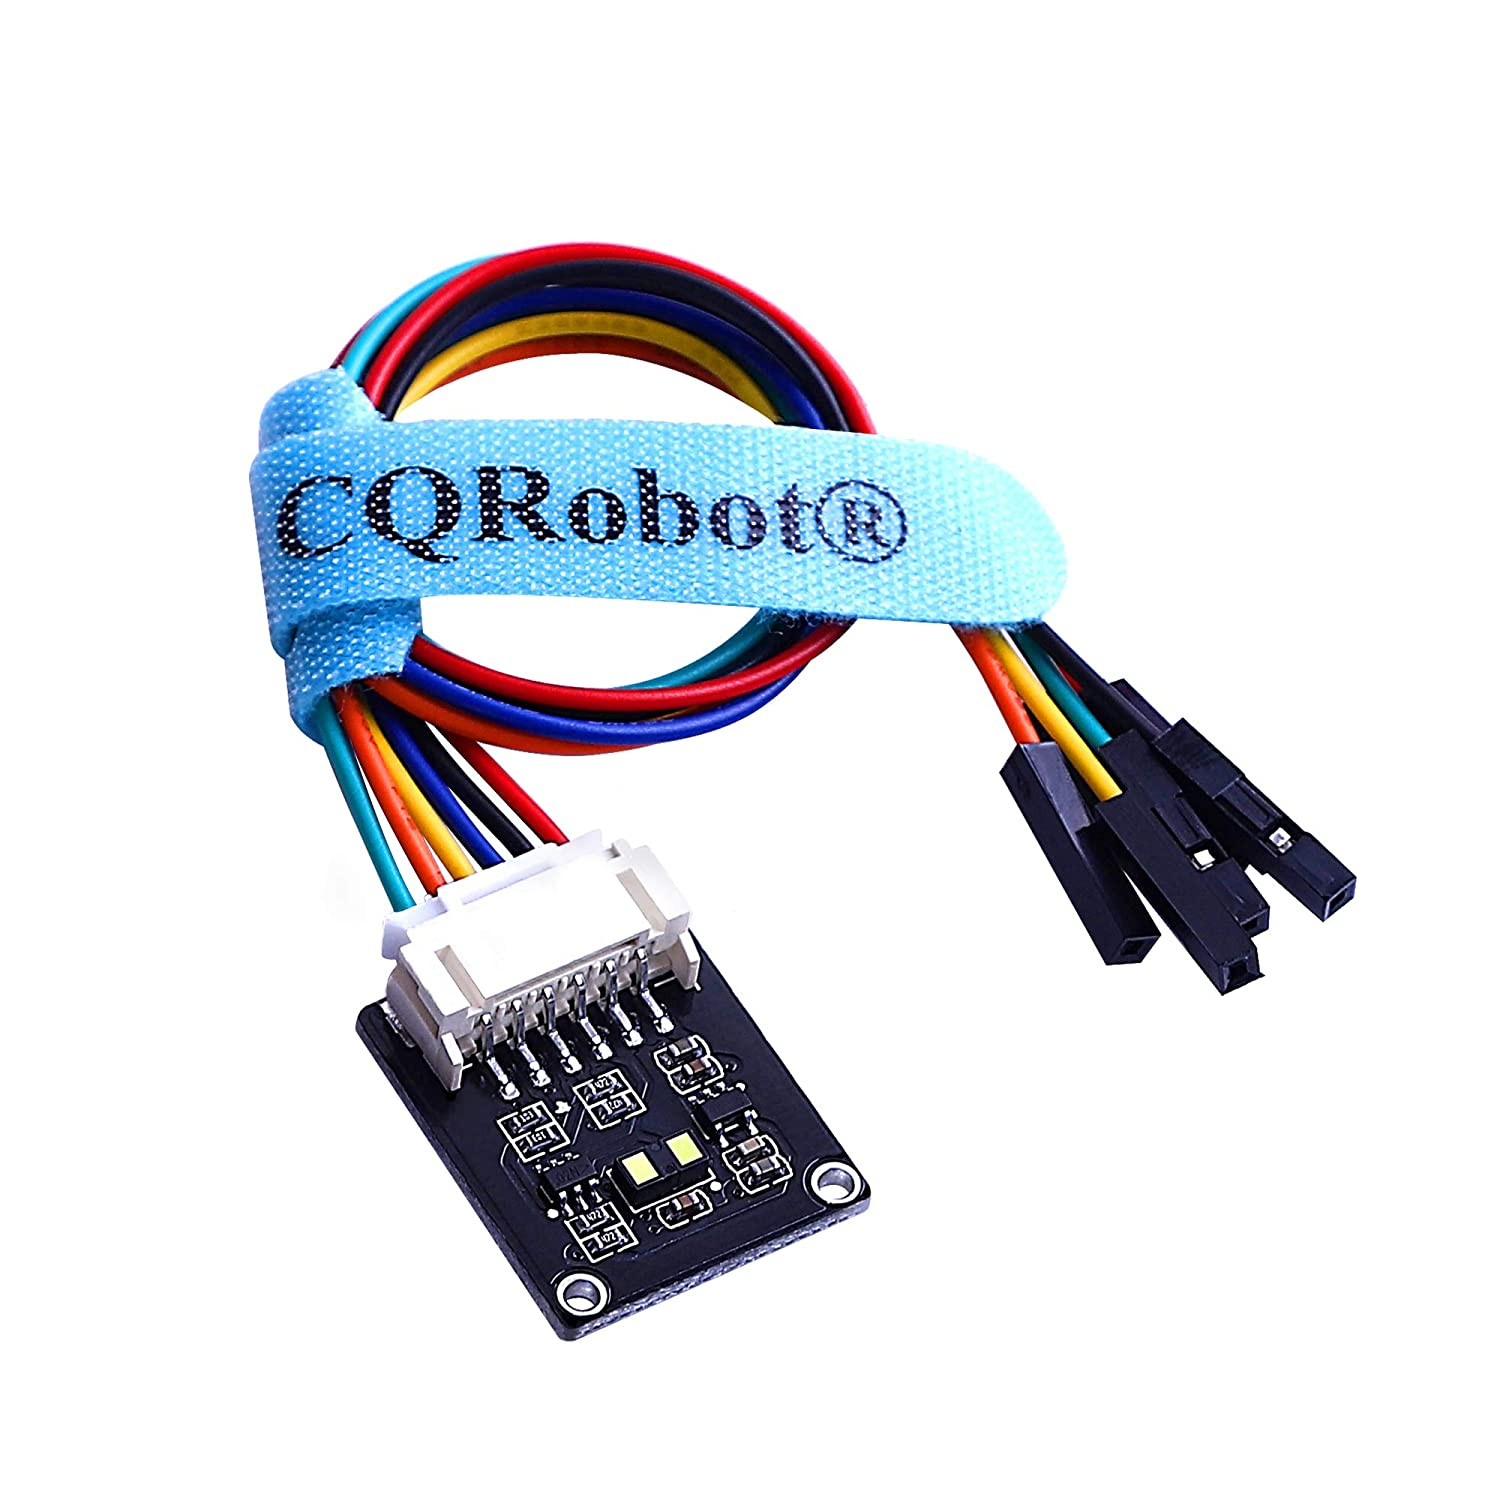 Raspberry Pi/Arduino/STM32 VL53L1X Time-of-Flight (ToF) Long Distance Ranging Sensor, 4 Meters Accuracy, 50Hz Ranging Frequency. Used in Mobile Robot, UAV, Detection Mode, Camera, Smart Home, etc.